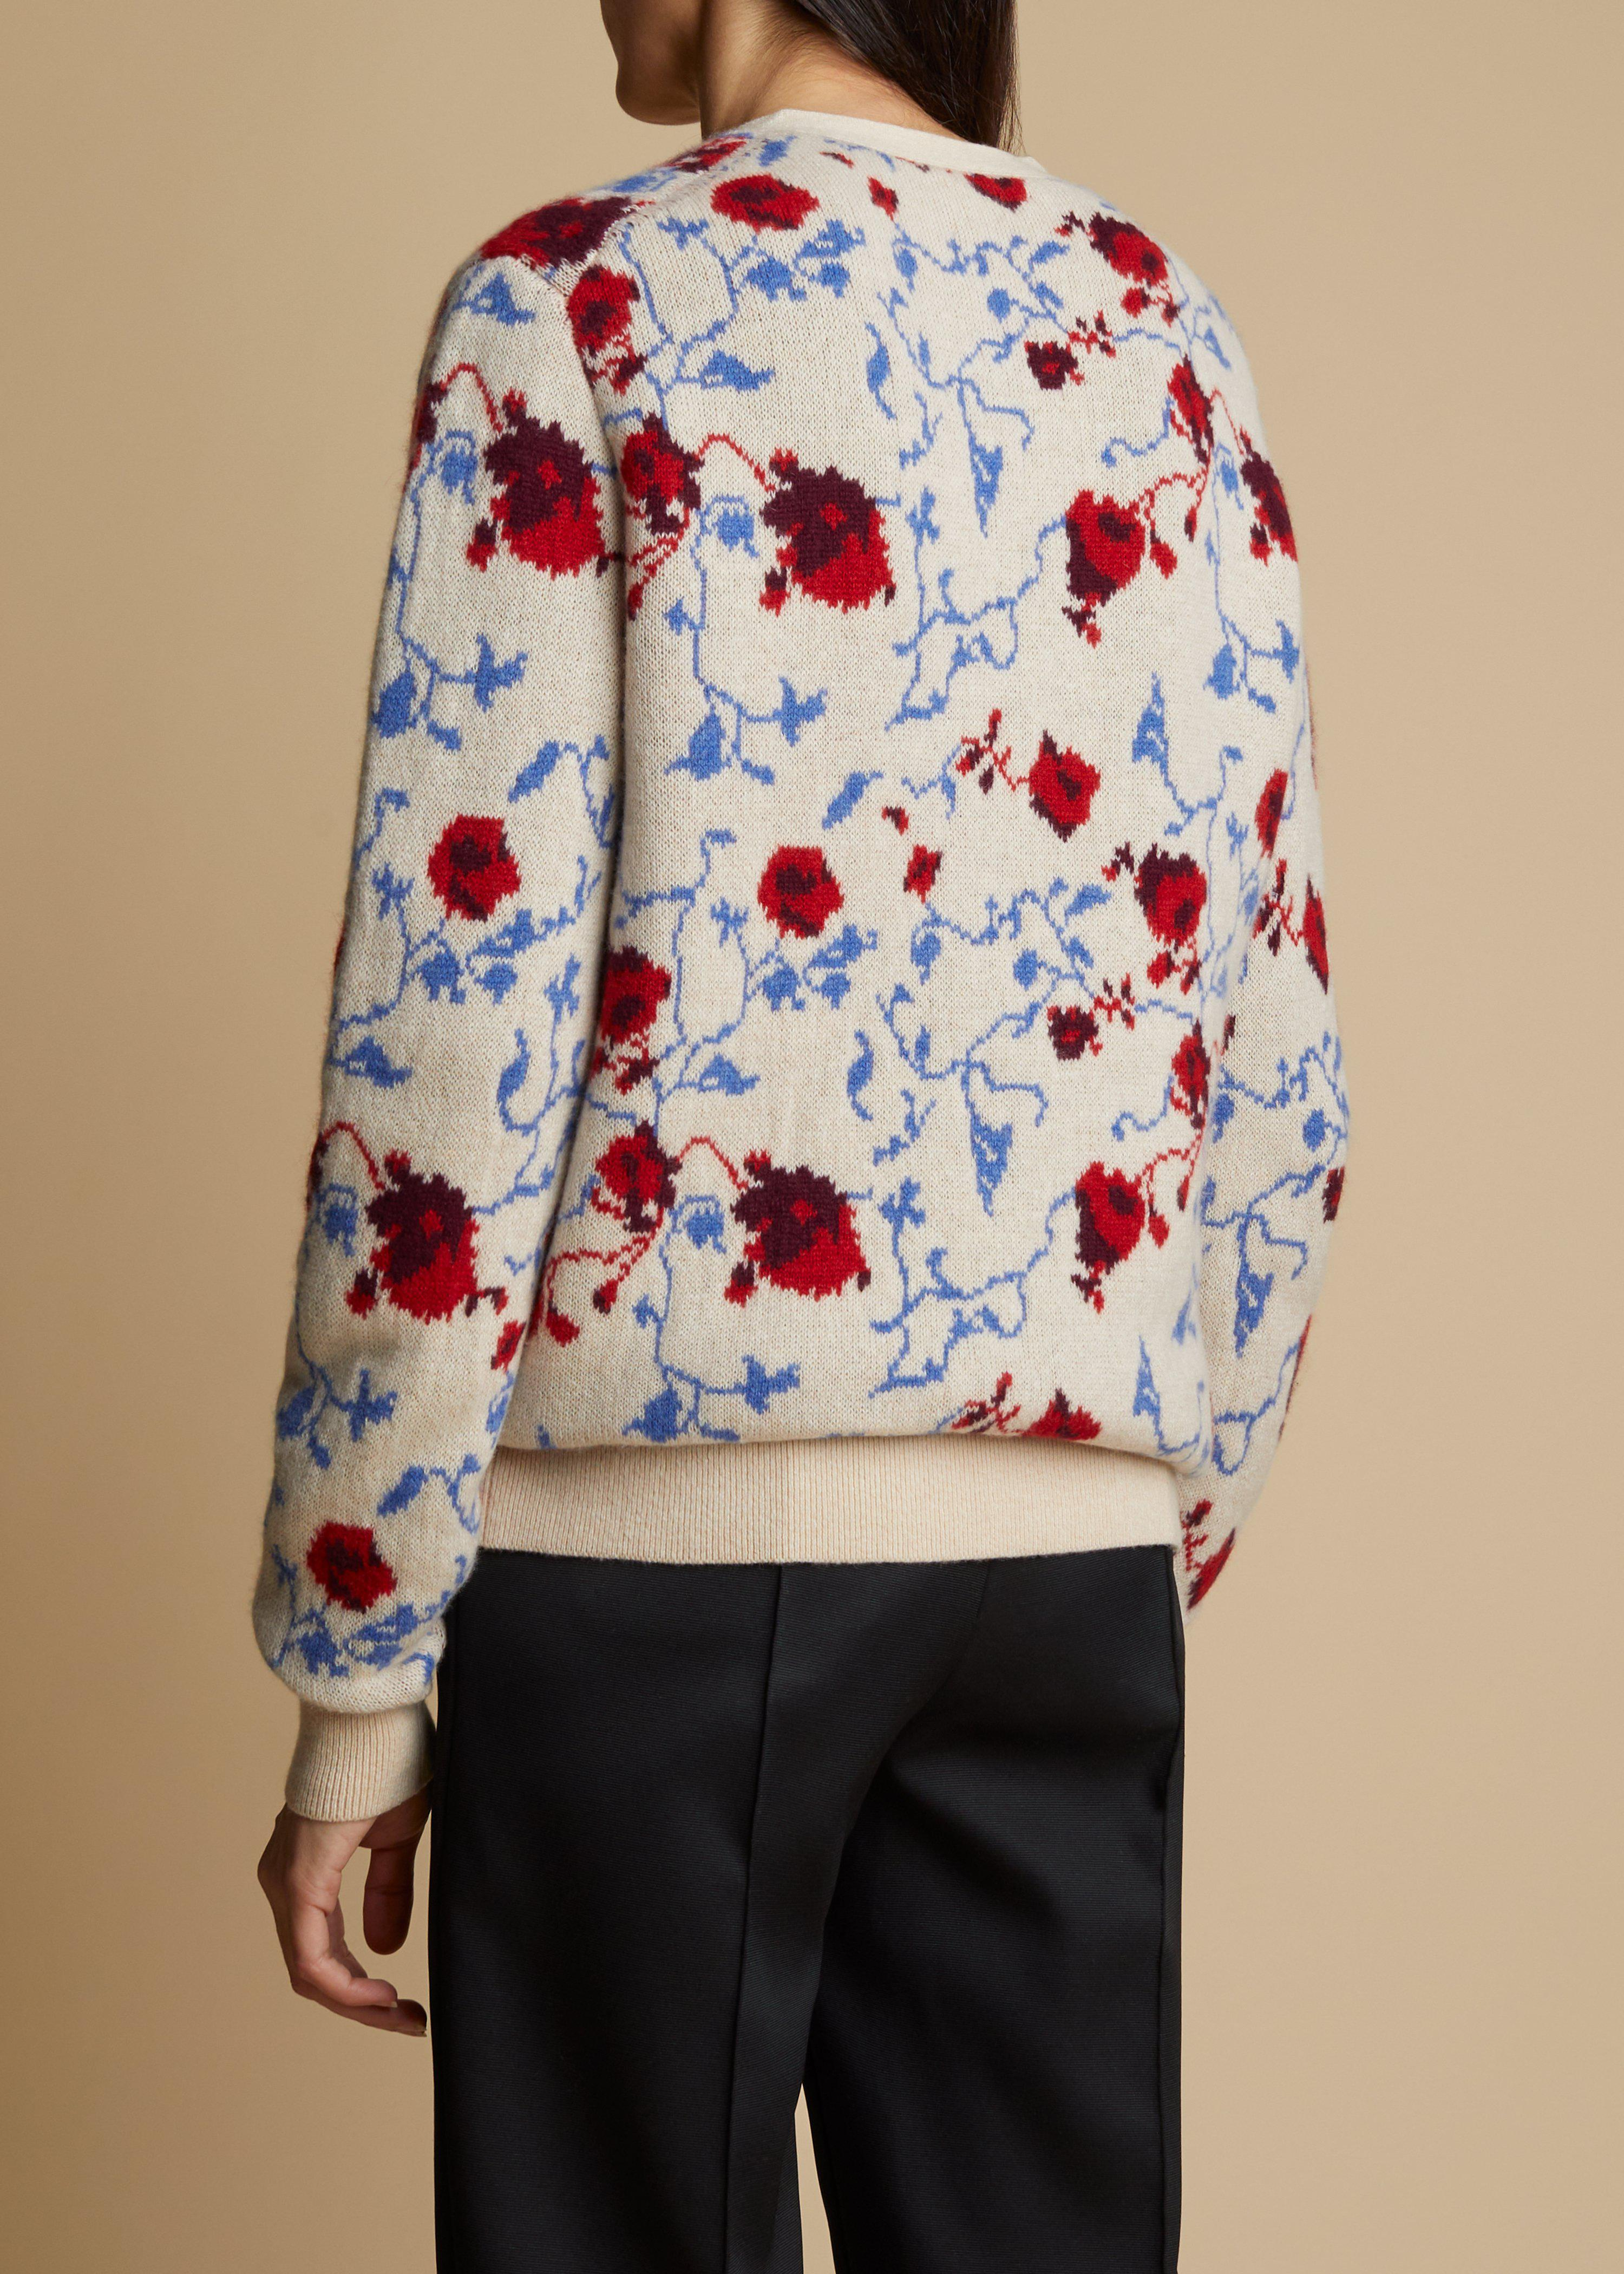 The Amelia Cardigan in Floral Jacquard 2